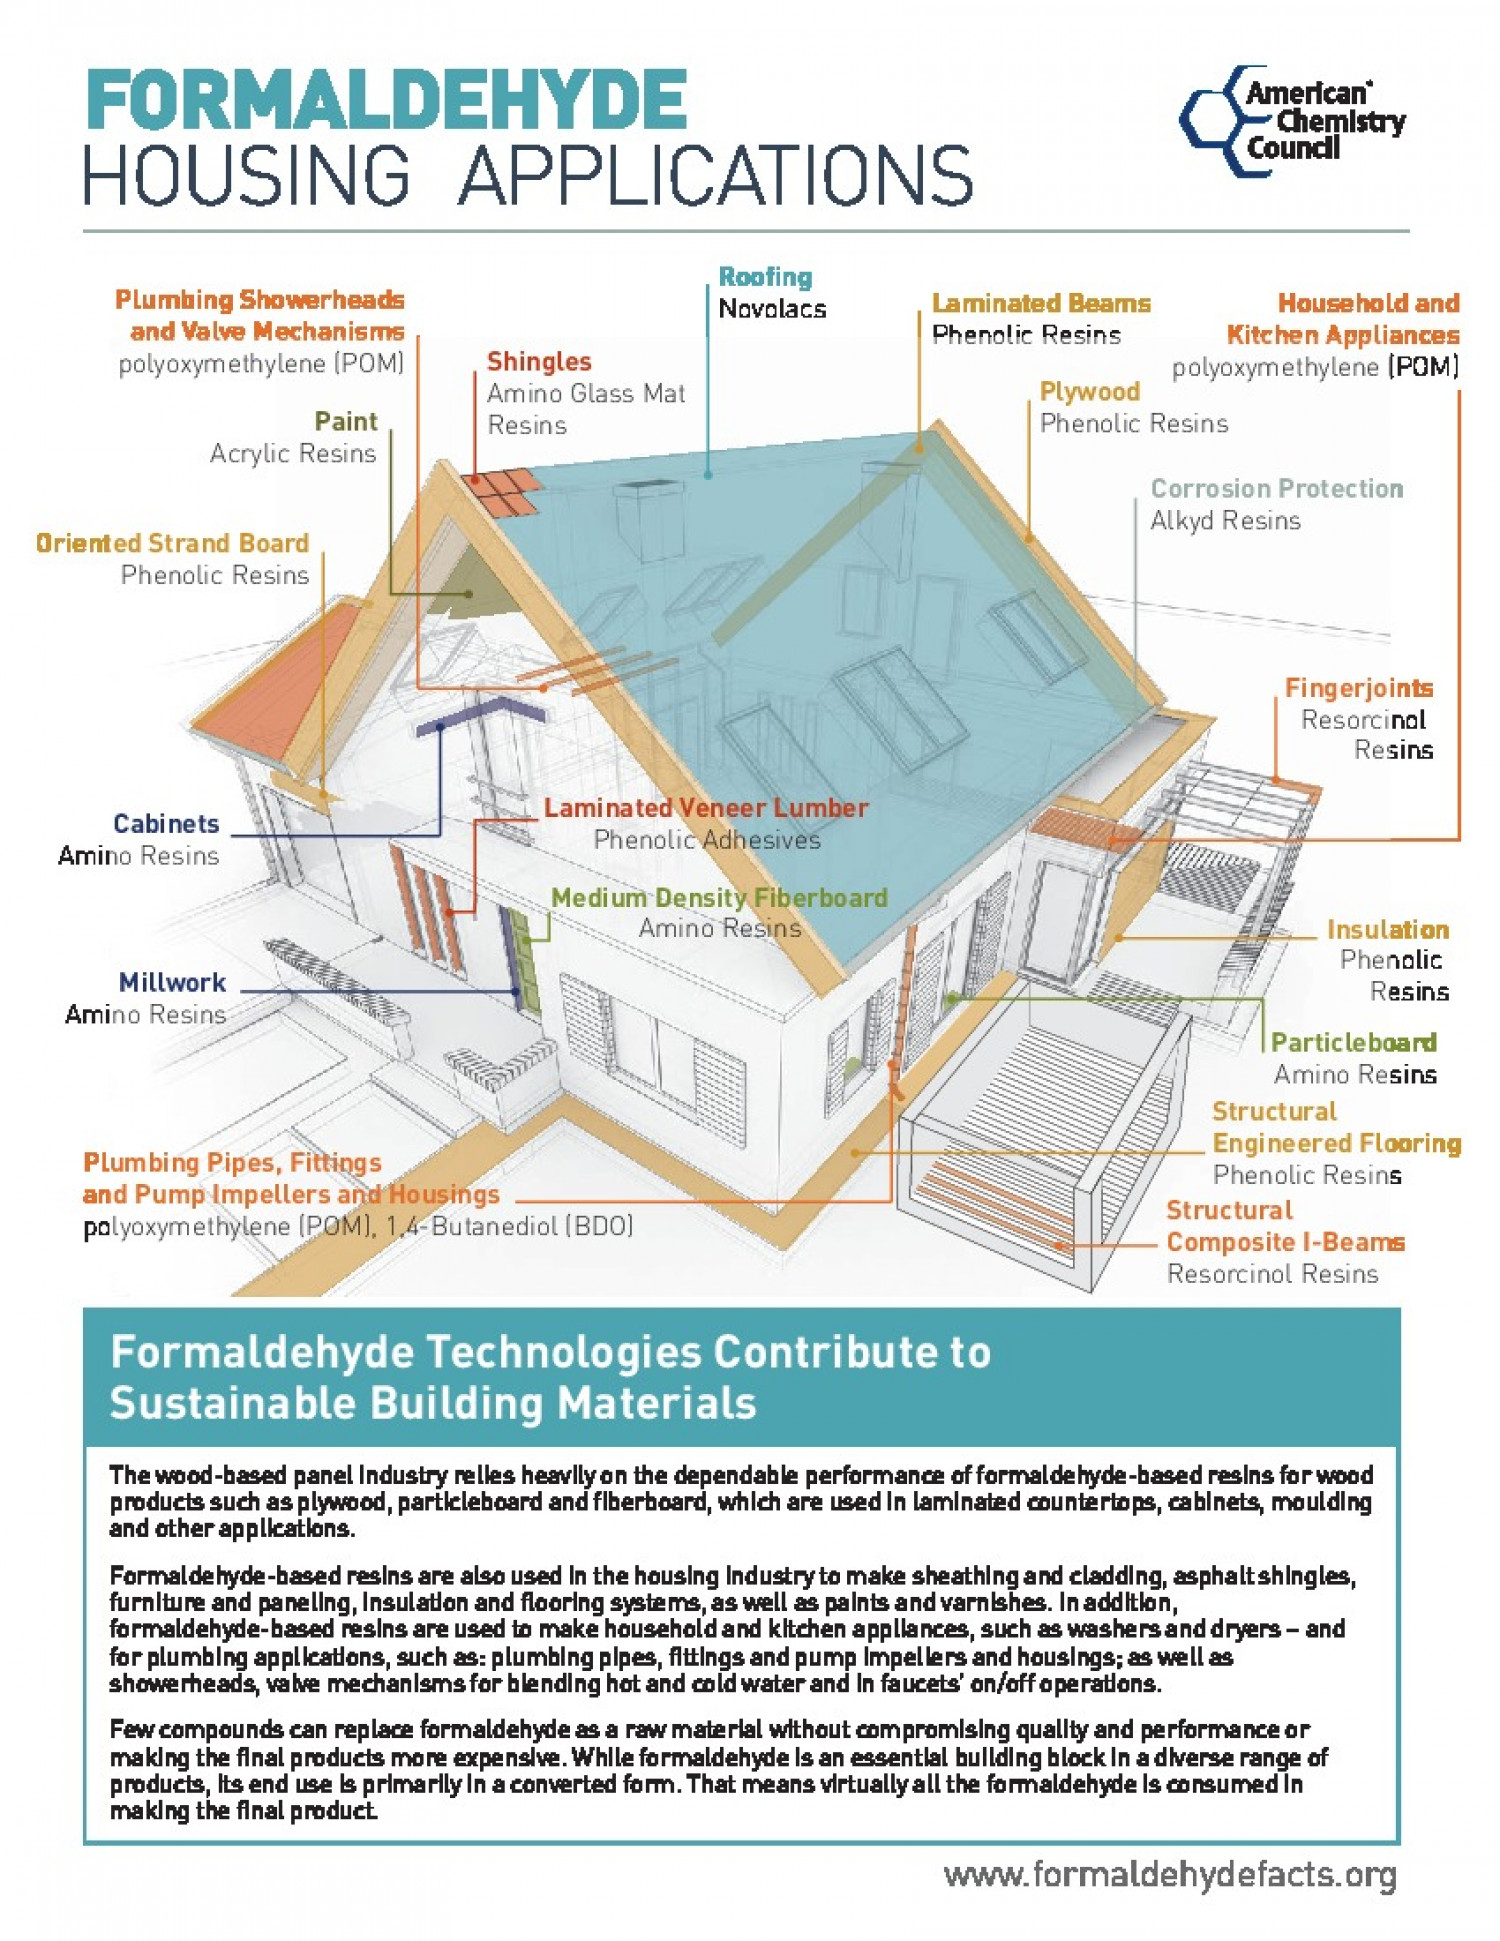 Formaldehyde Housing Applications Infographic